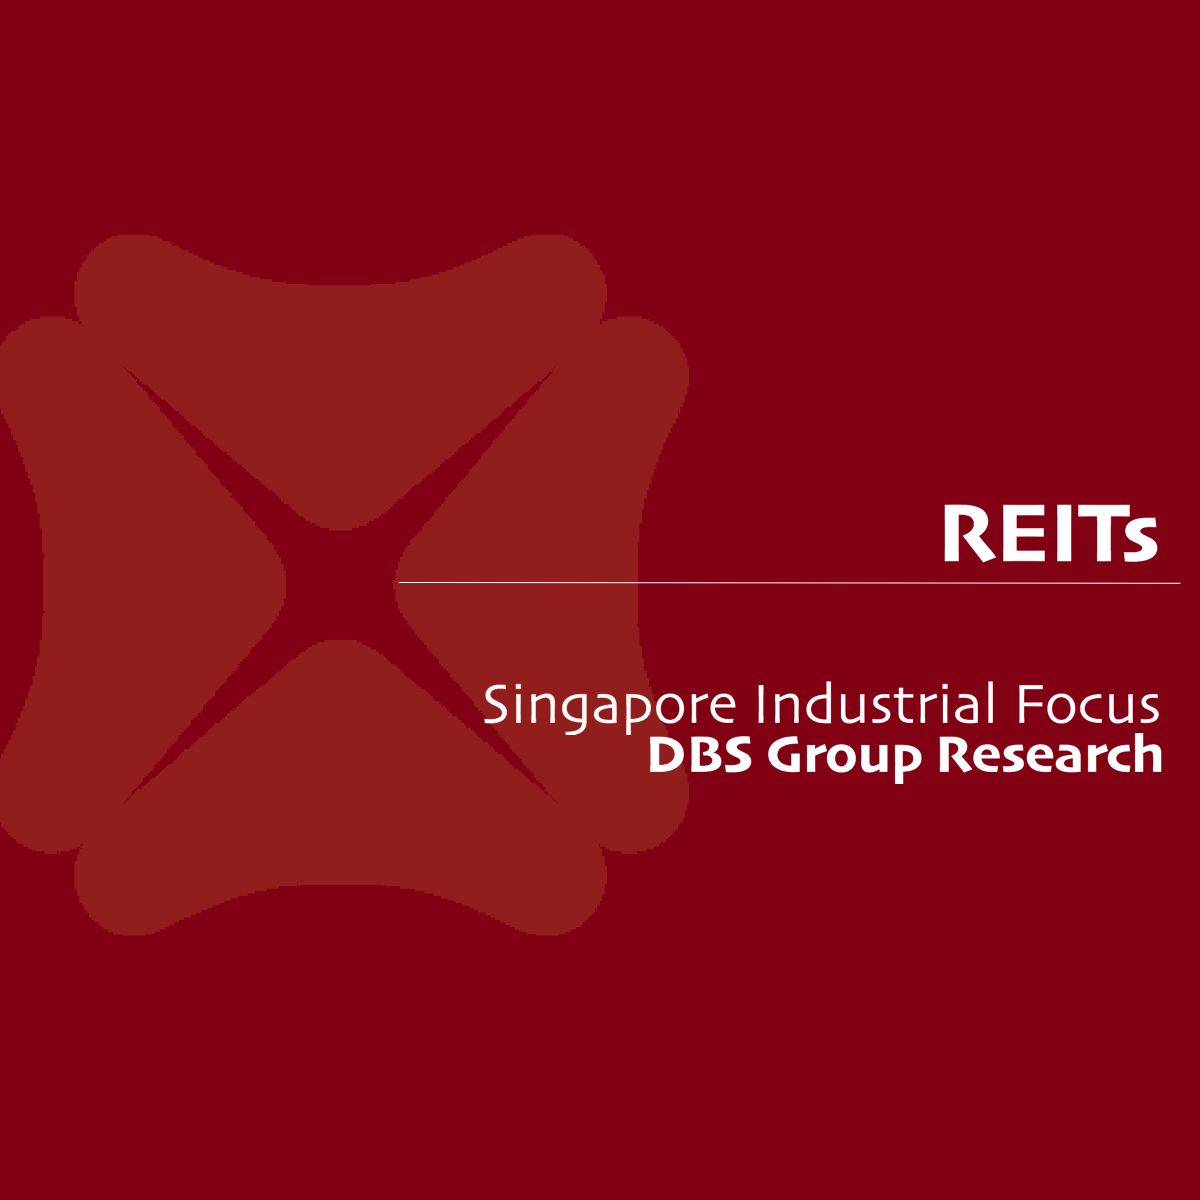 Singapore REITs - DBS Vickers 2017-06-12: Thai Investors Were In Town !